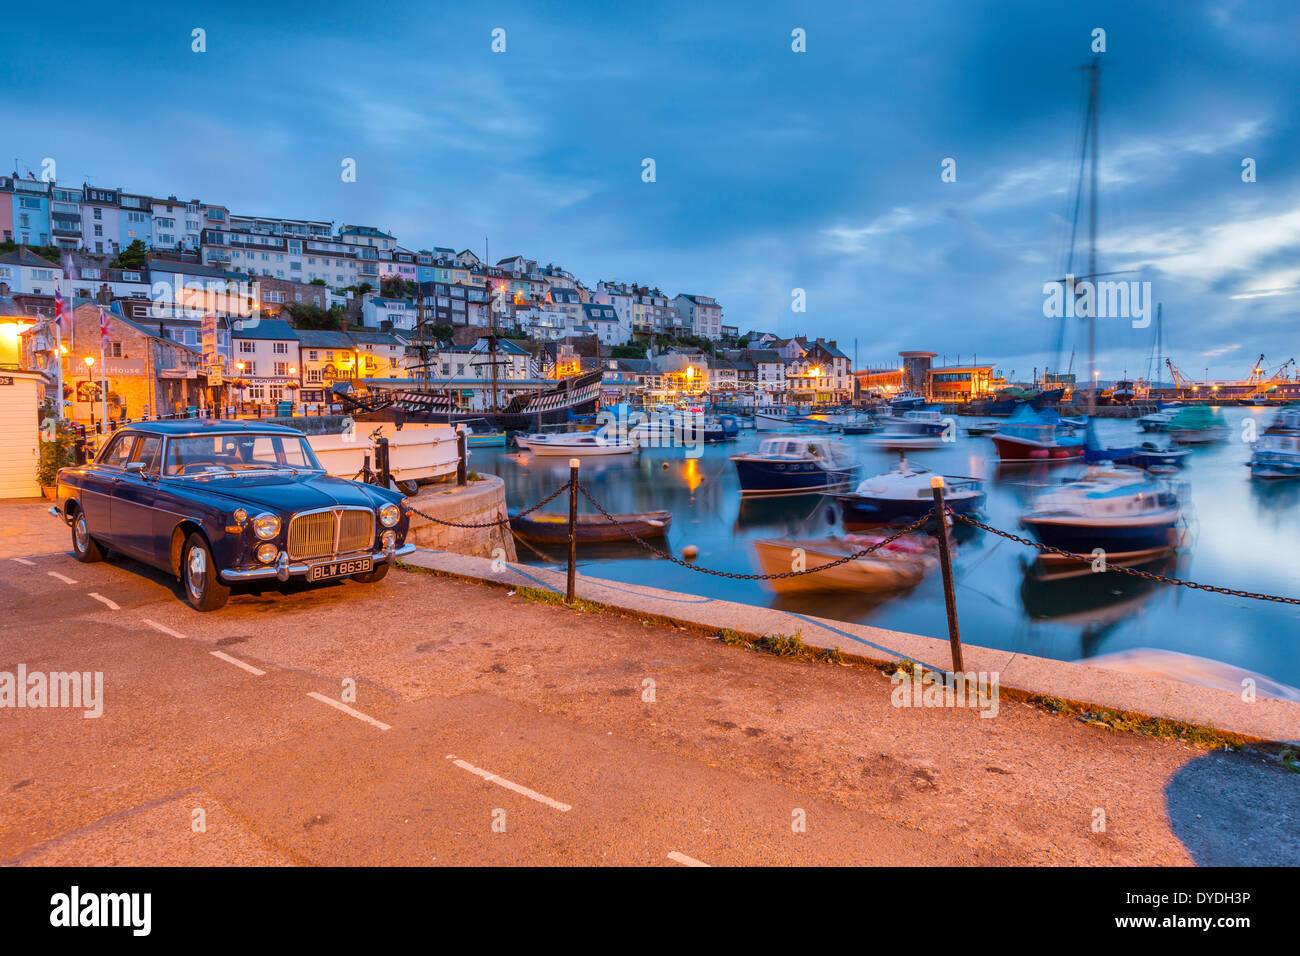 Boats moored in Brixham harbour. - Stock Image